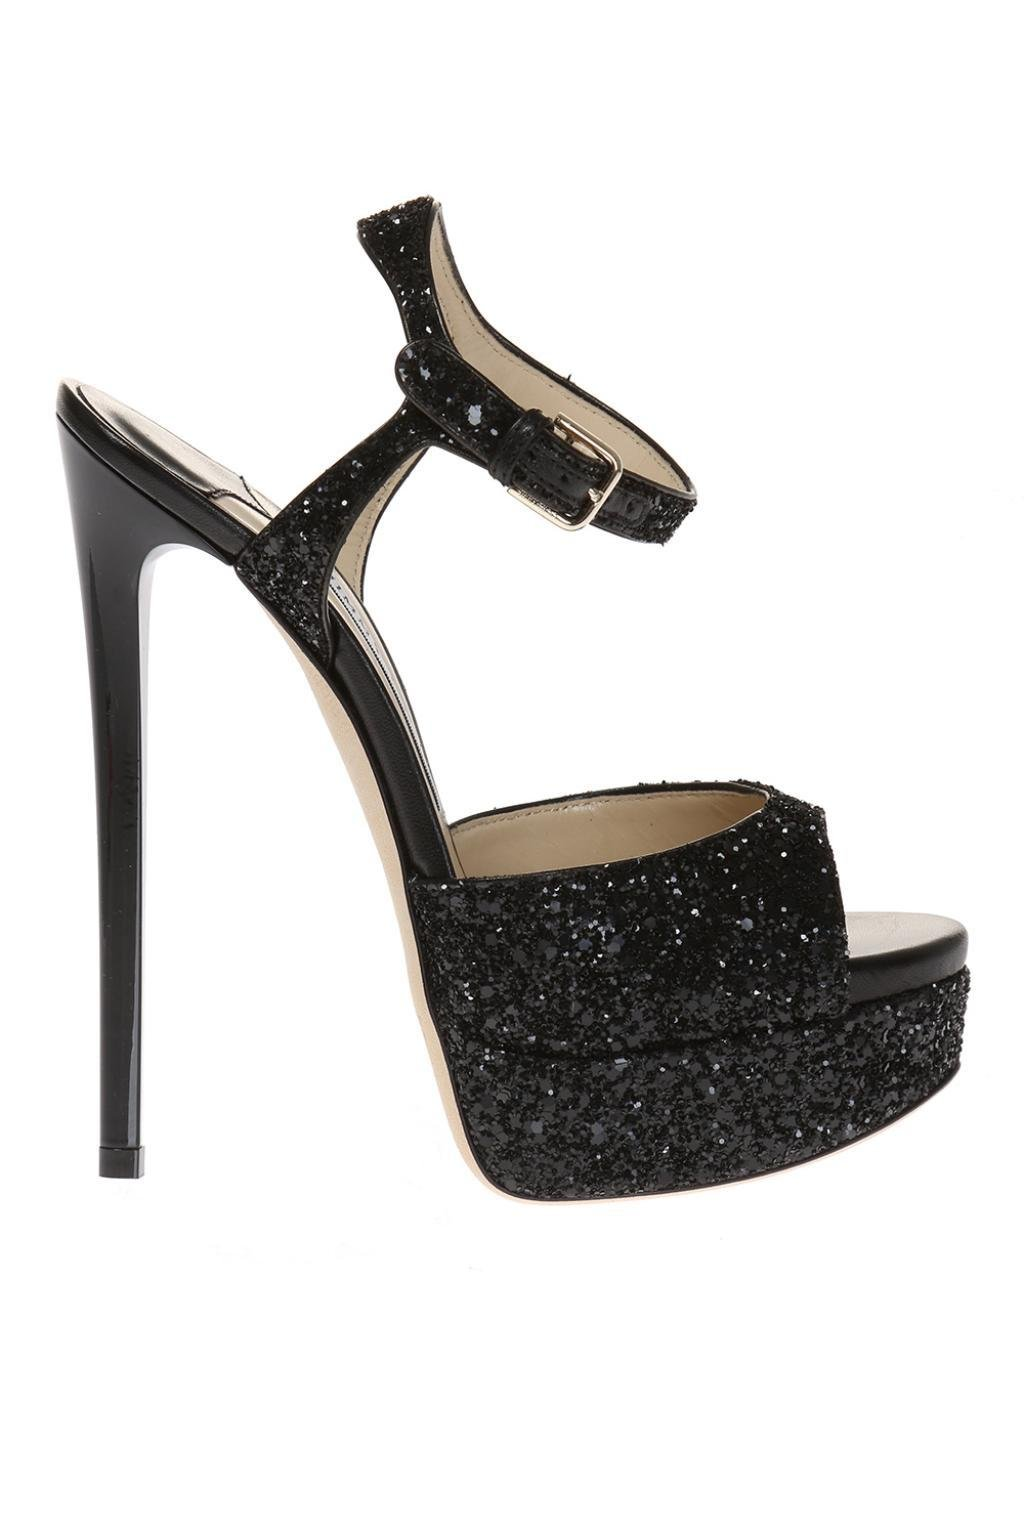 c108d436cb2 Gallery. Previously sold at  VITKAC · Women s Jimmy Choo Glitter ...